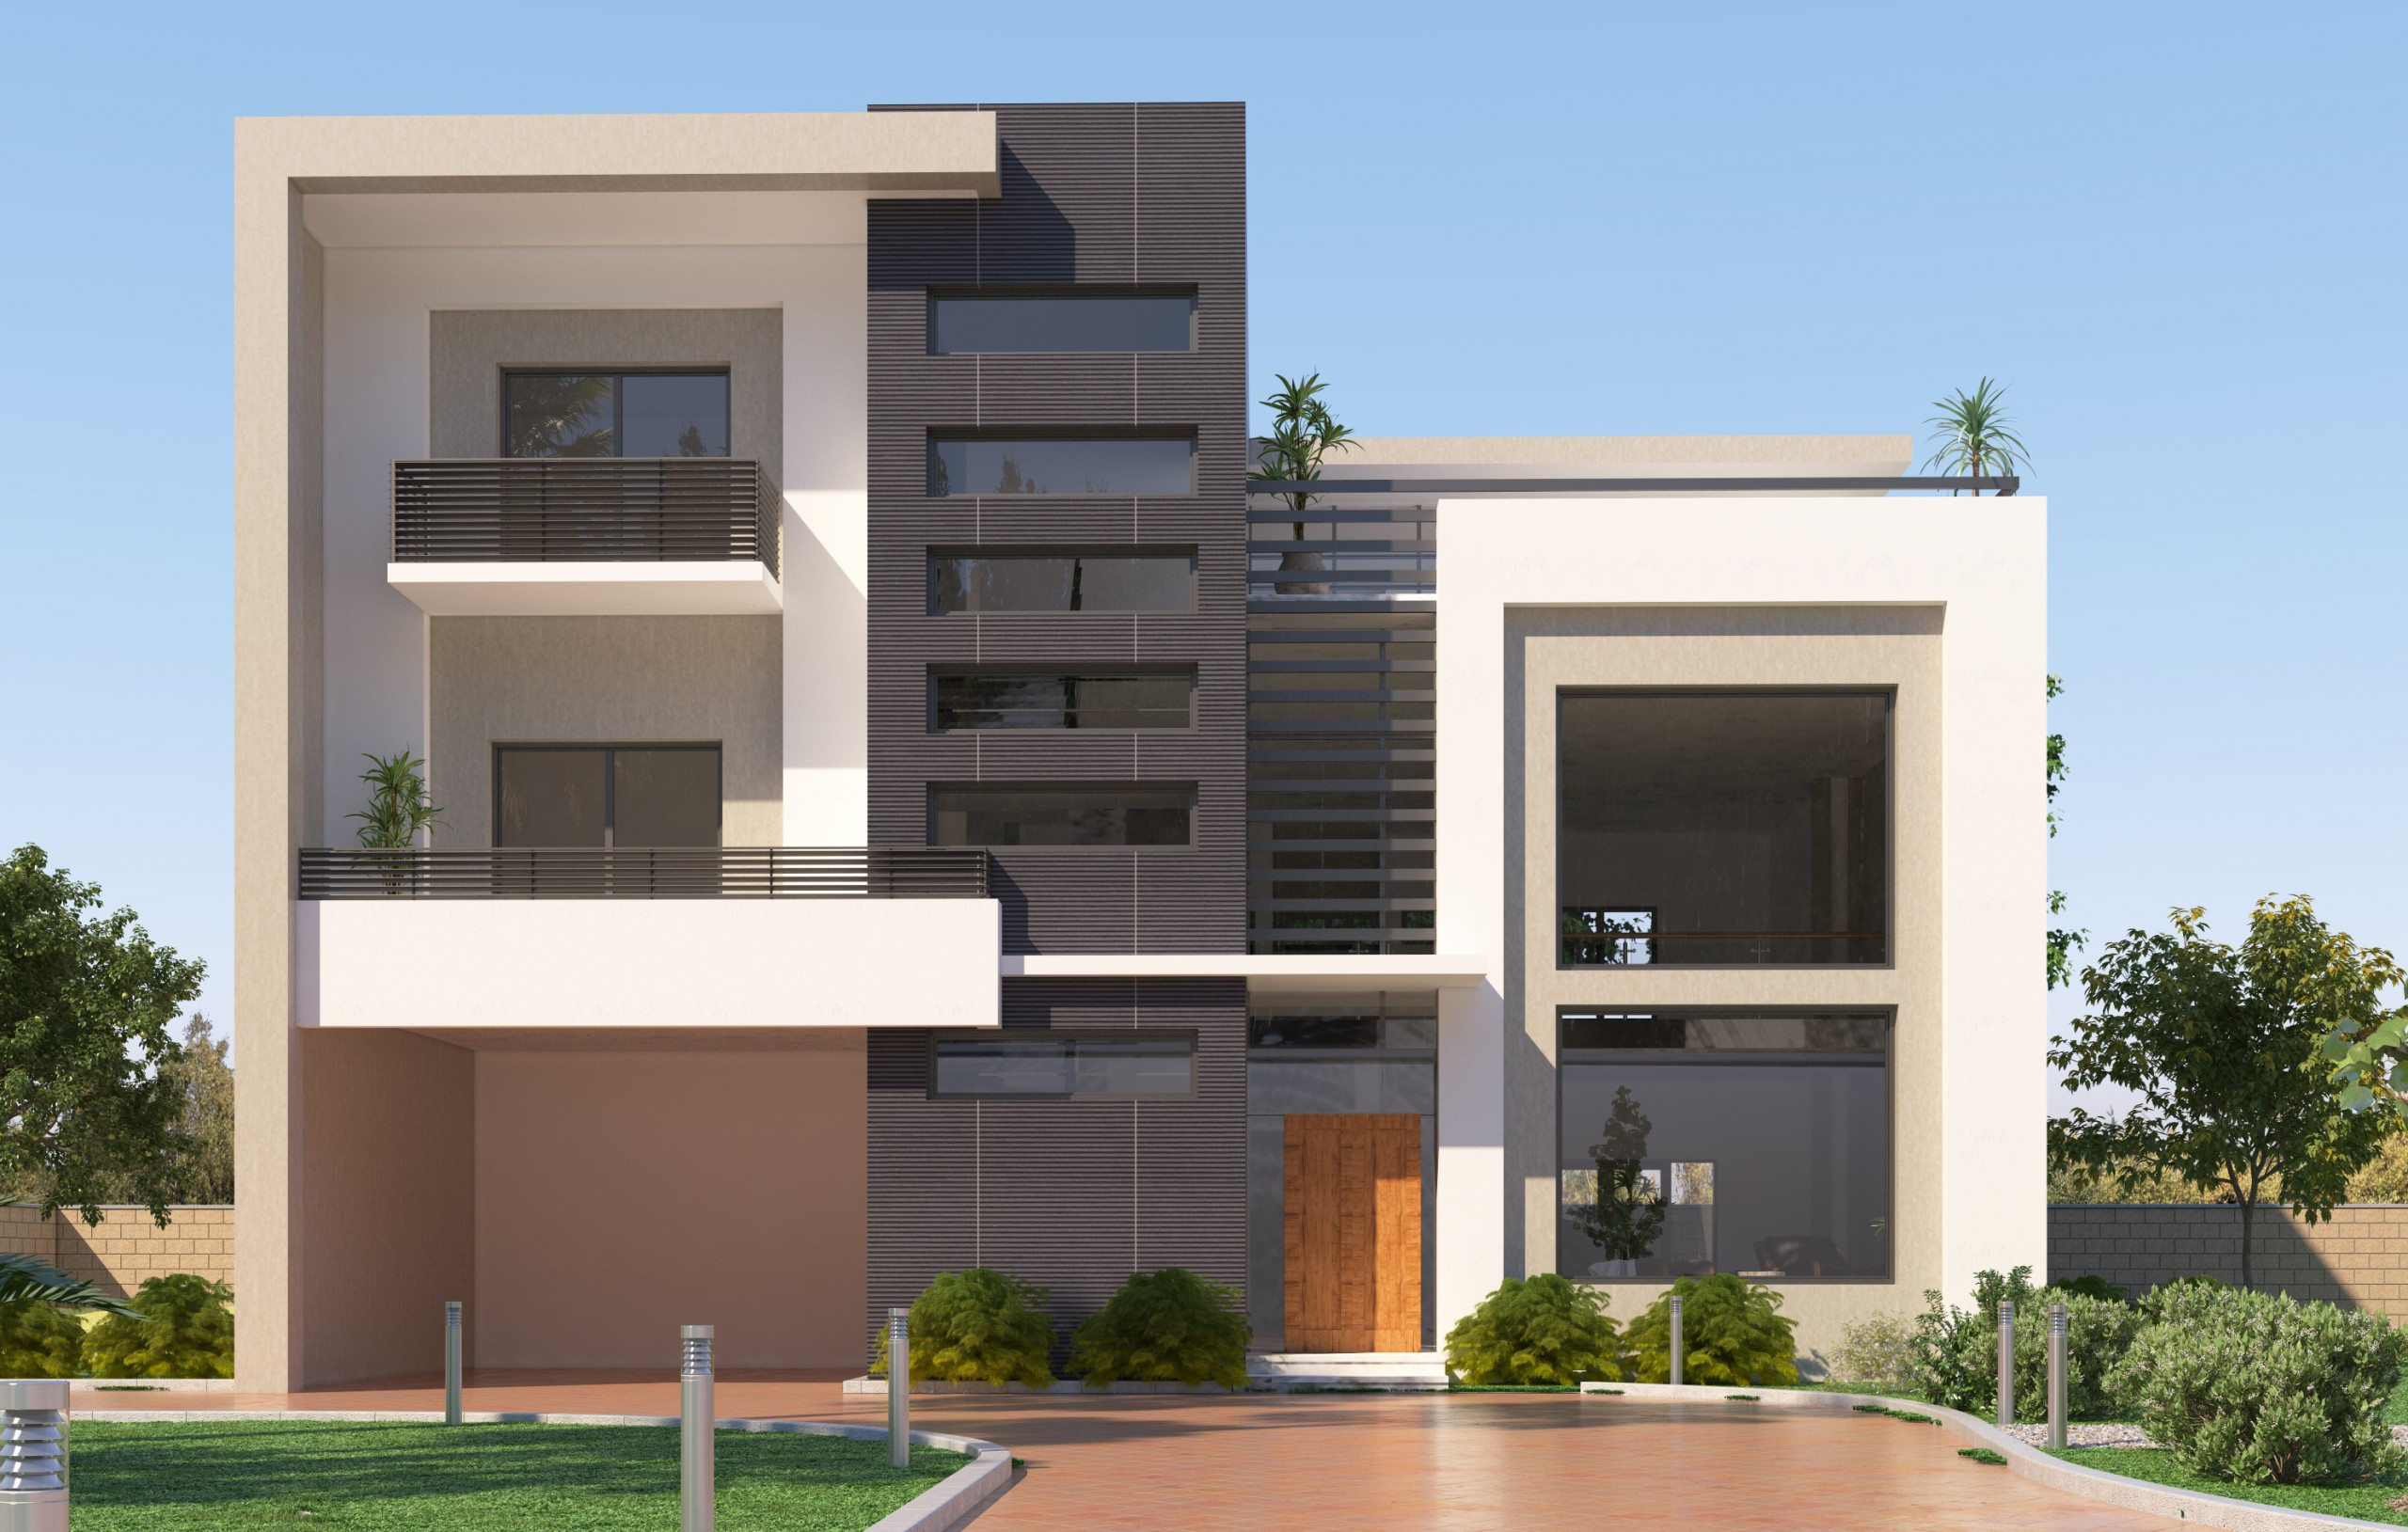 2 Copy scaled - Residential Villa 08